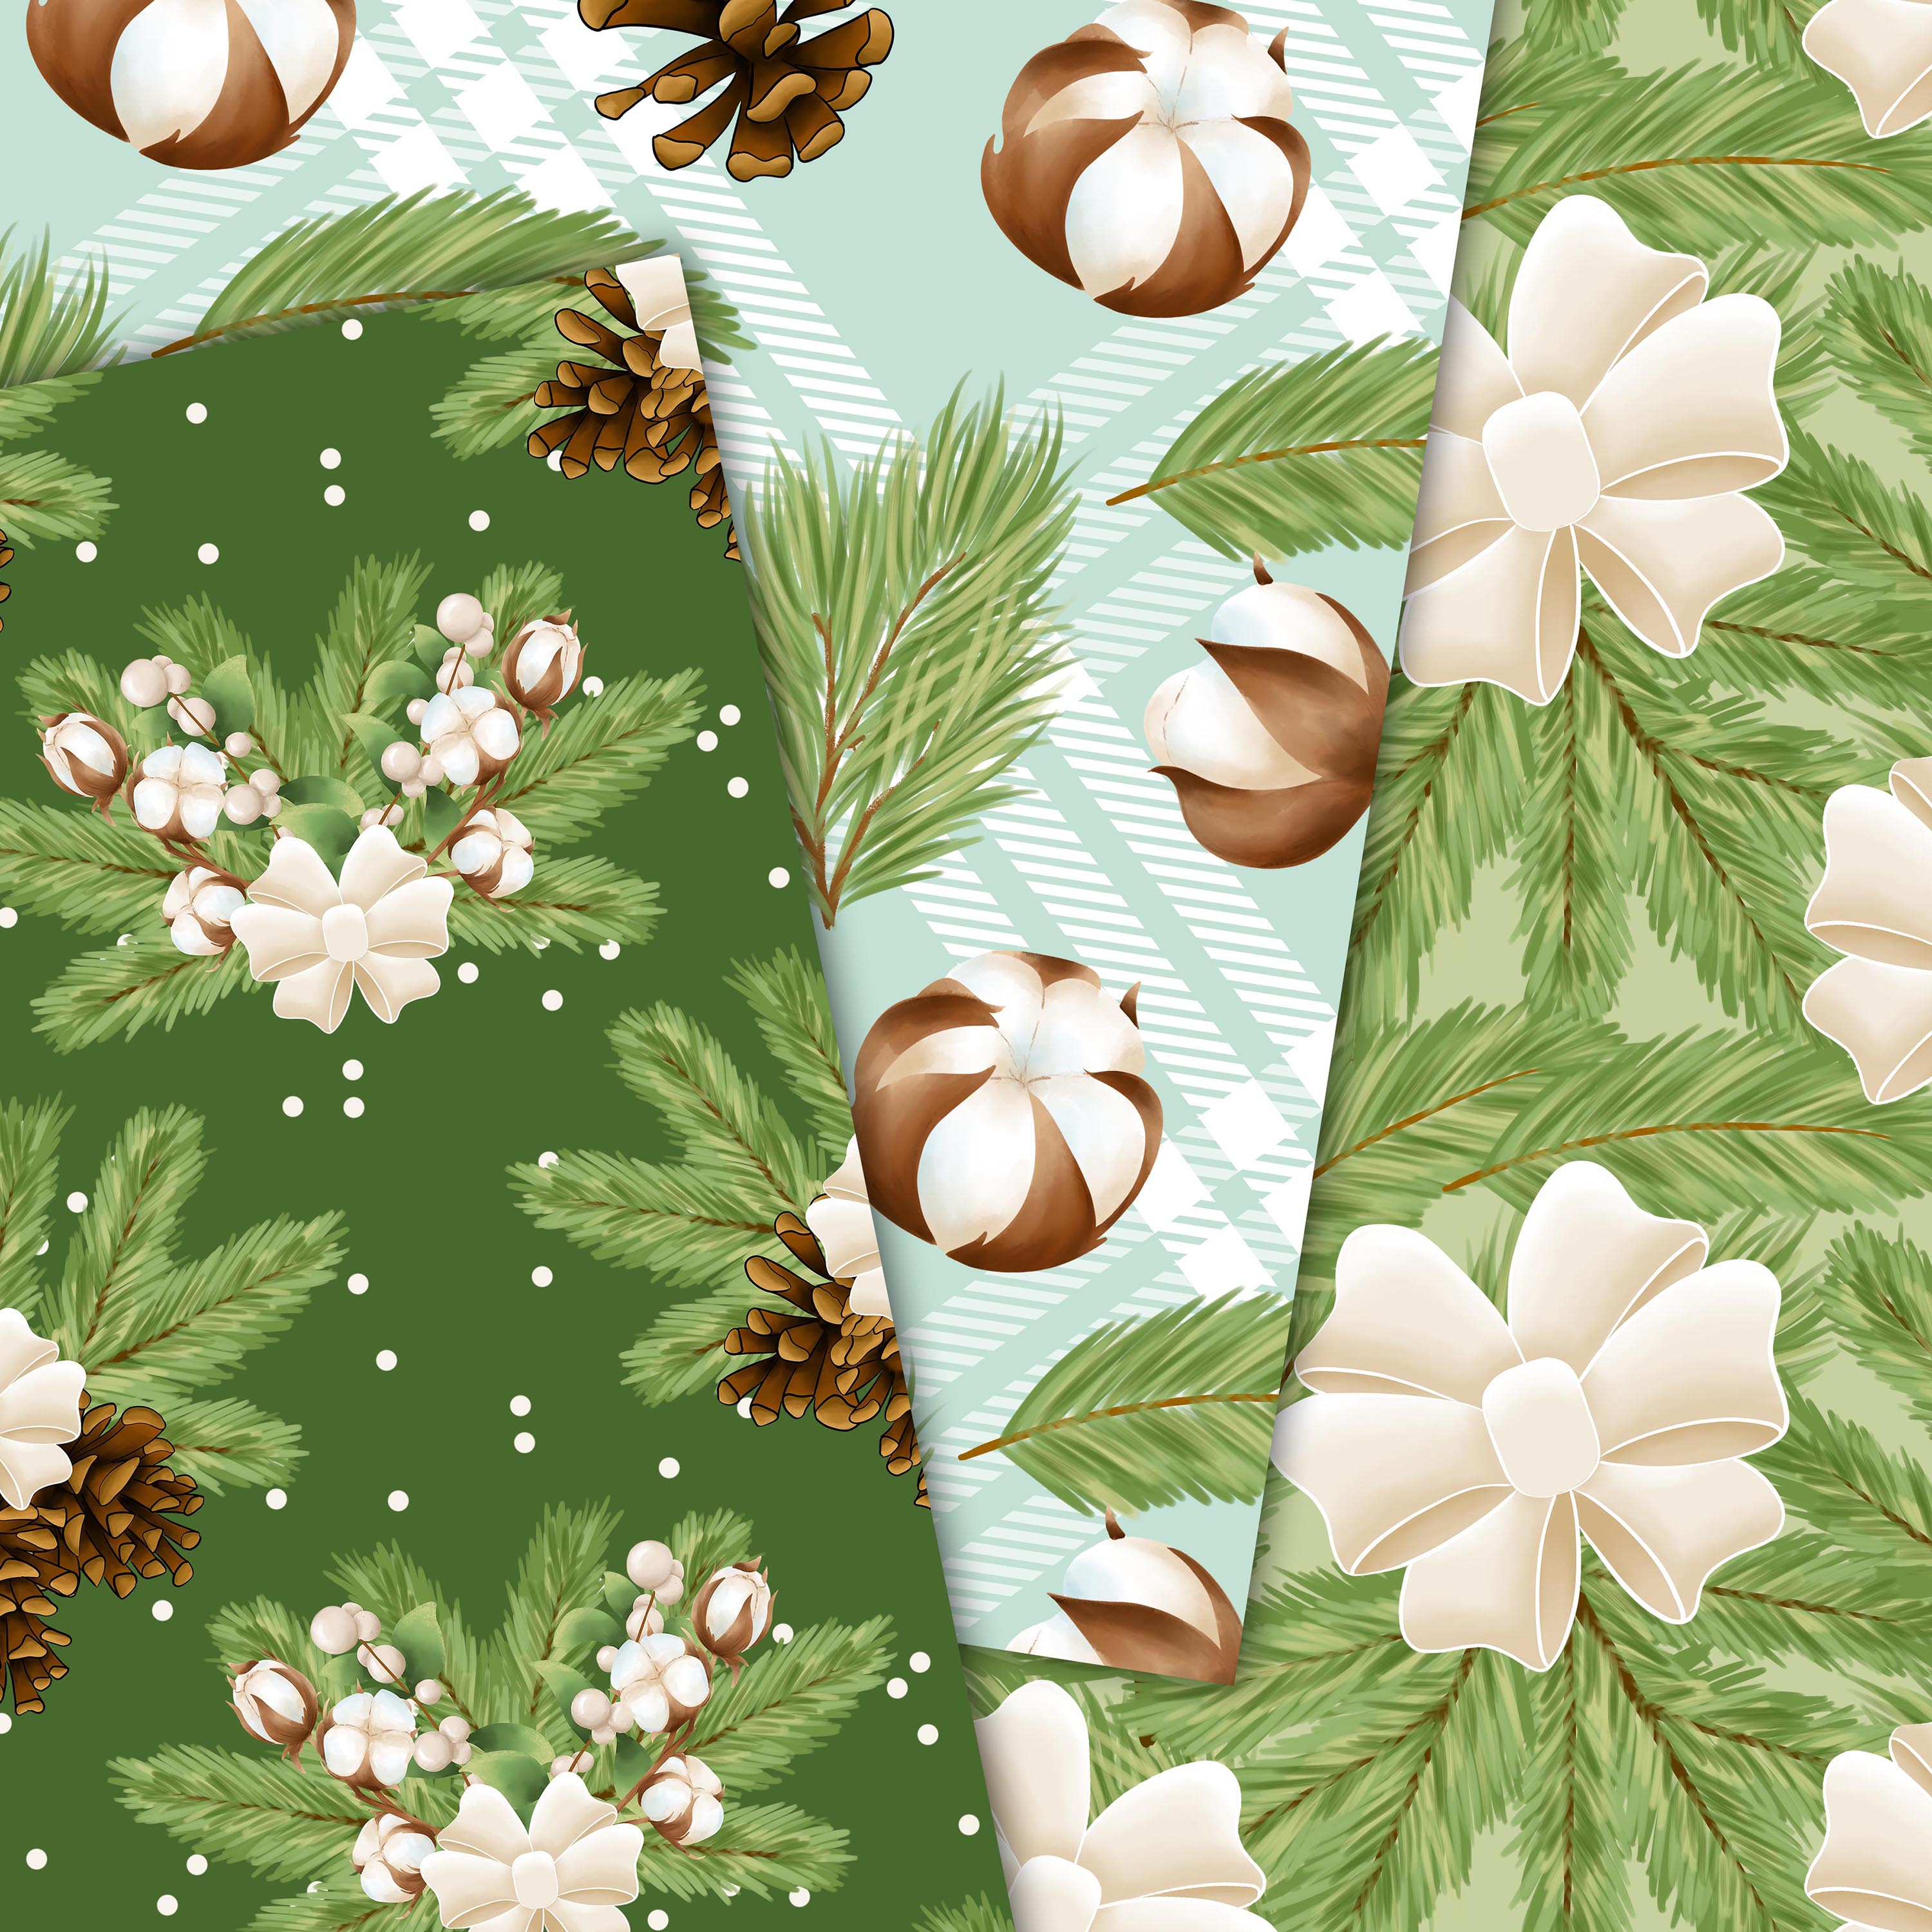 Cotton winter patterns example image 2